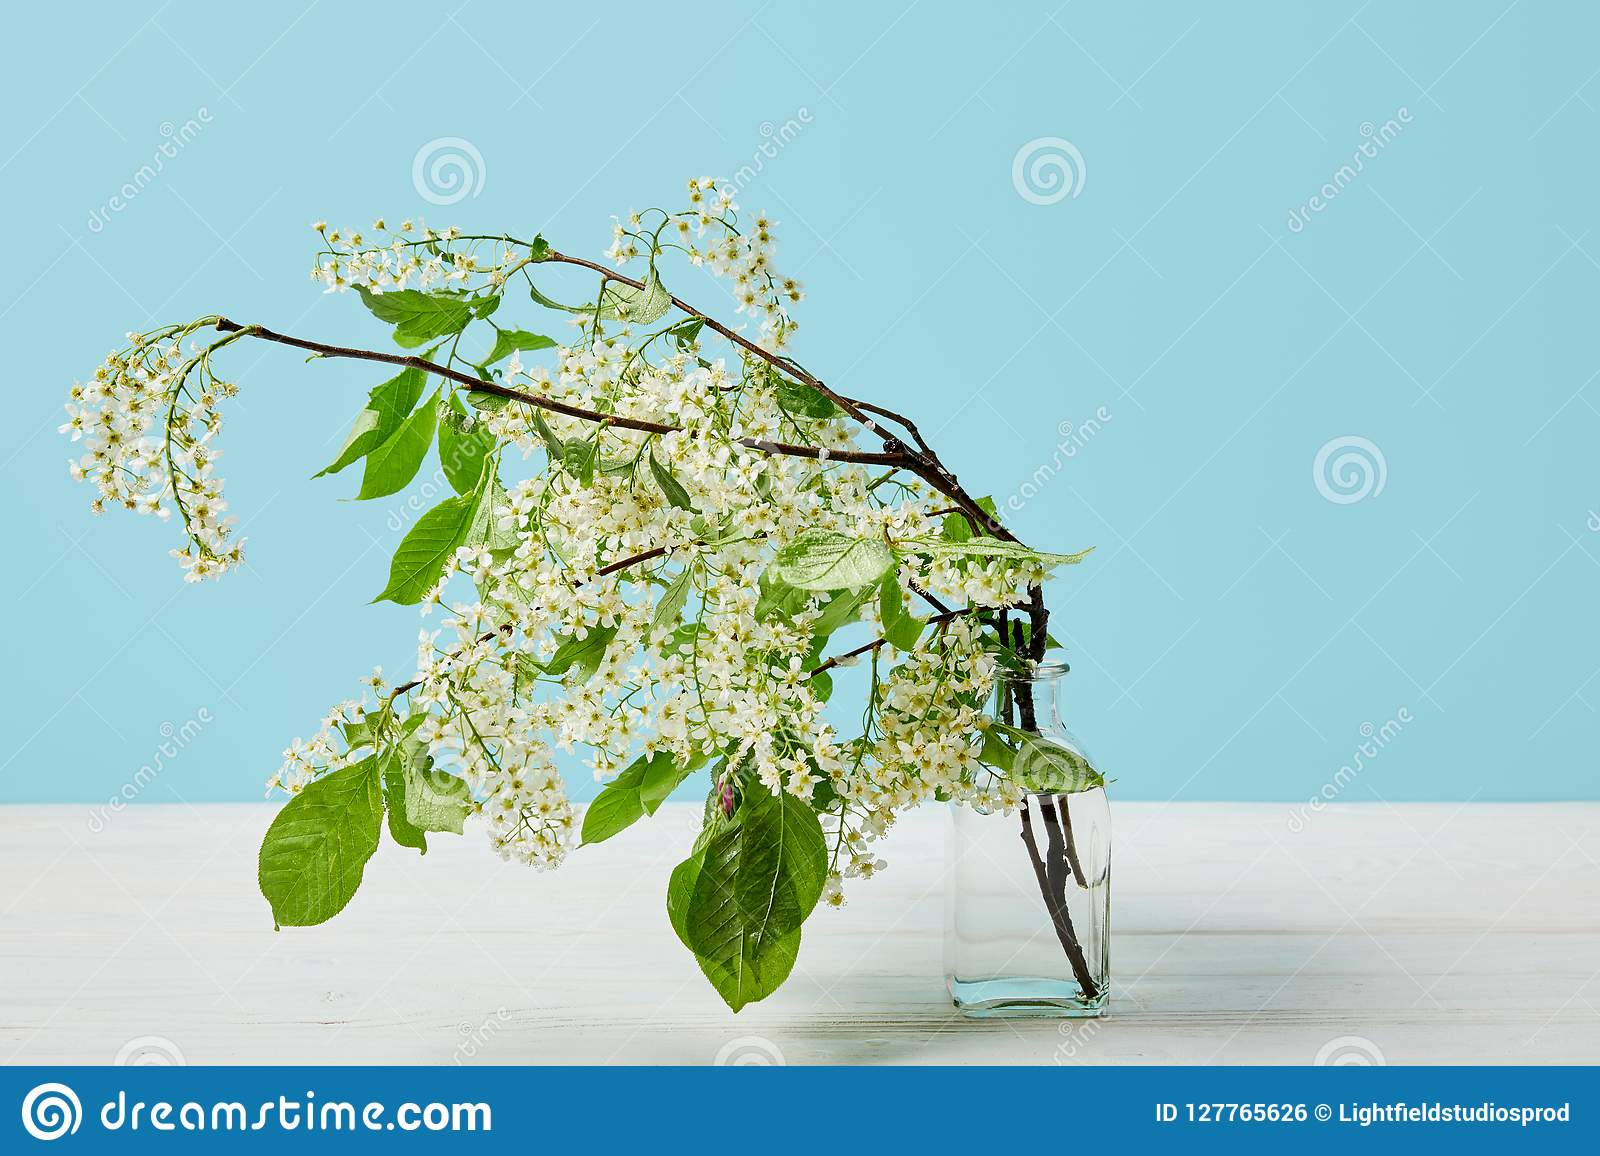 Branches Of White Bird Cherry Blossom In Glass Isolated On